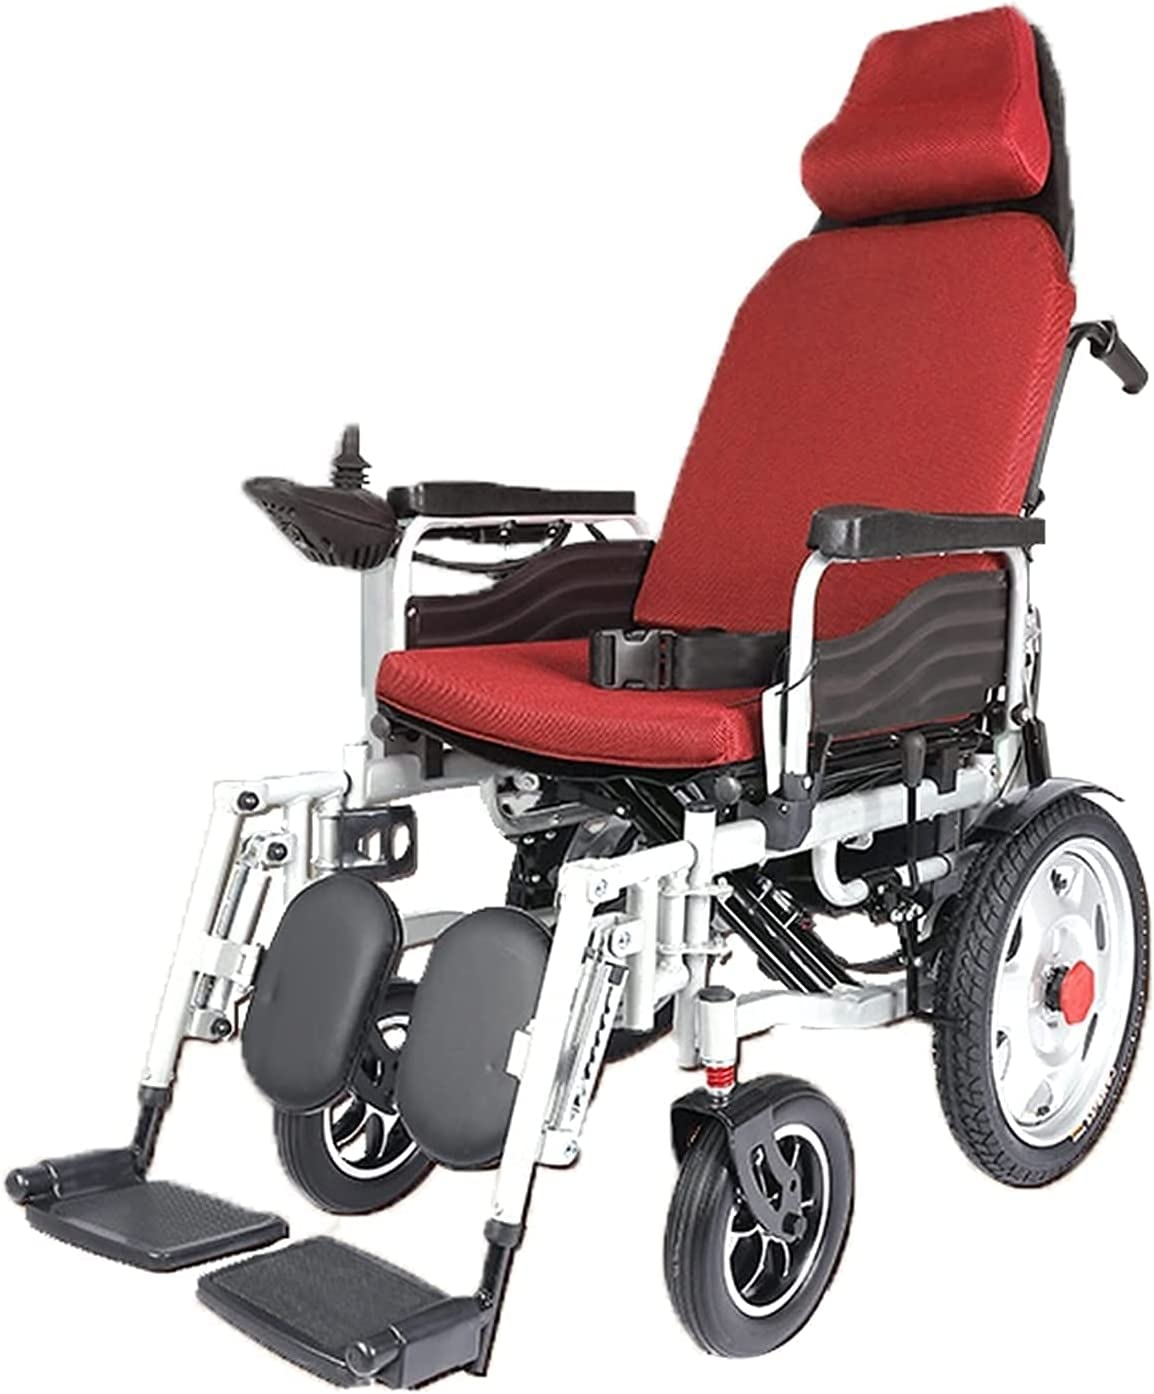 Four-Wheeled Scooter with Headrest Max 42% OFF Wheelchair Electric Max 78% OFF All-Terra